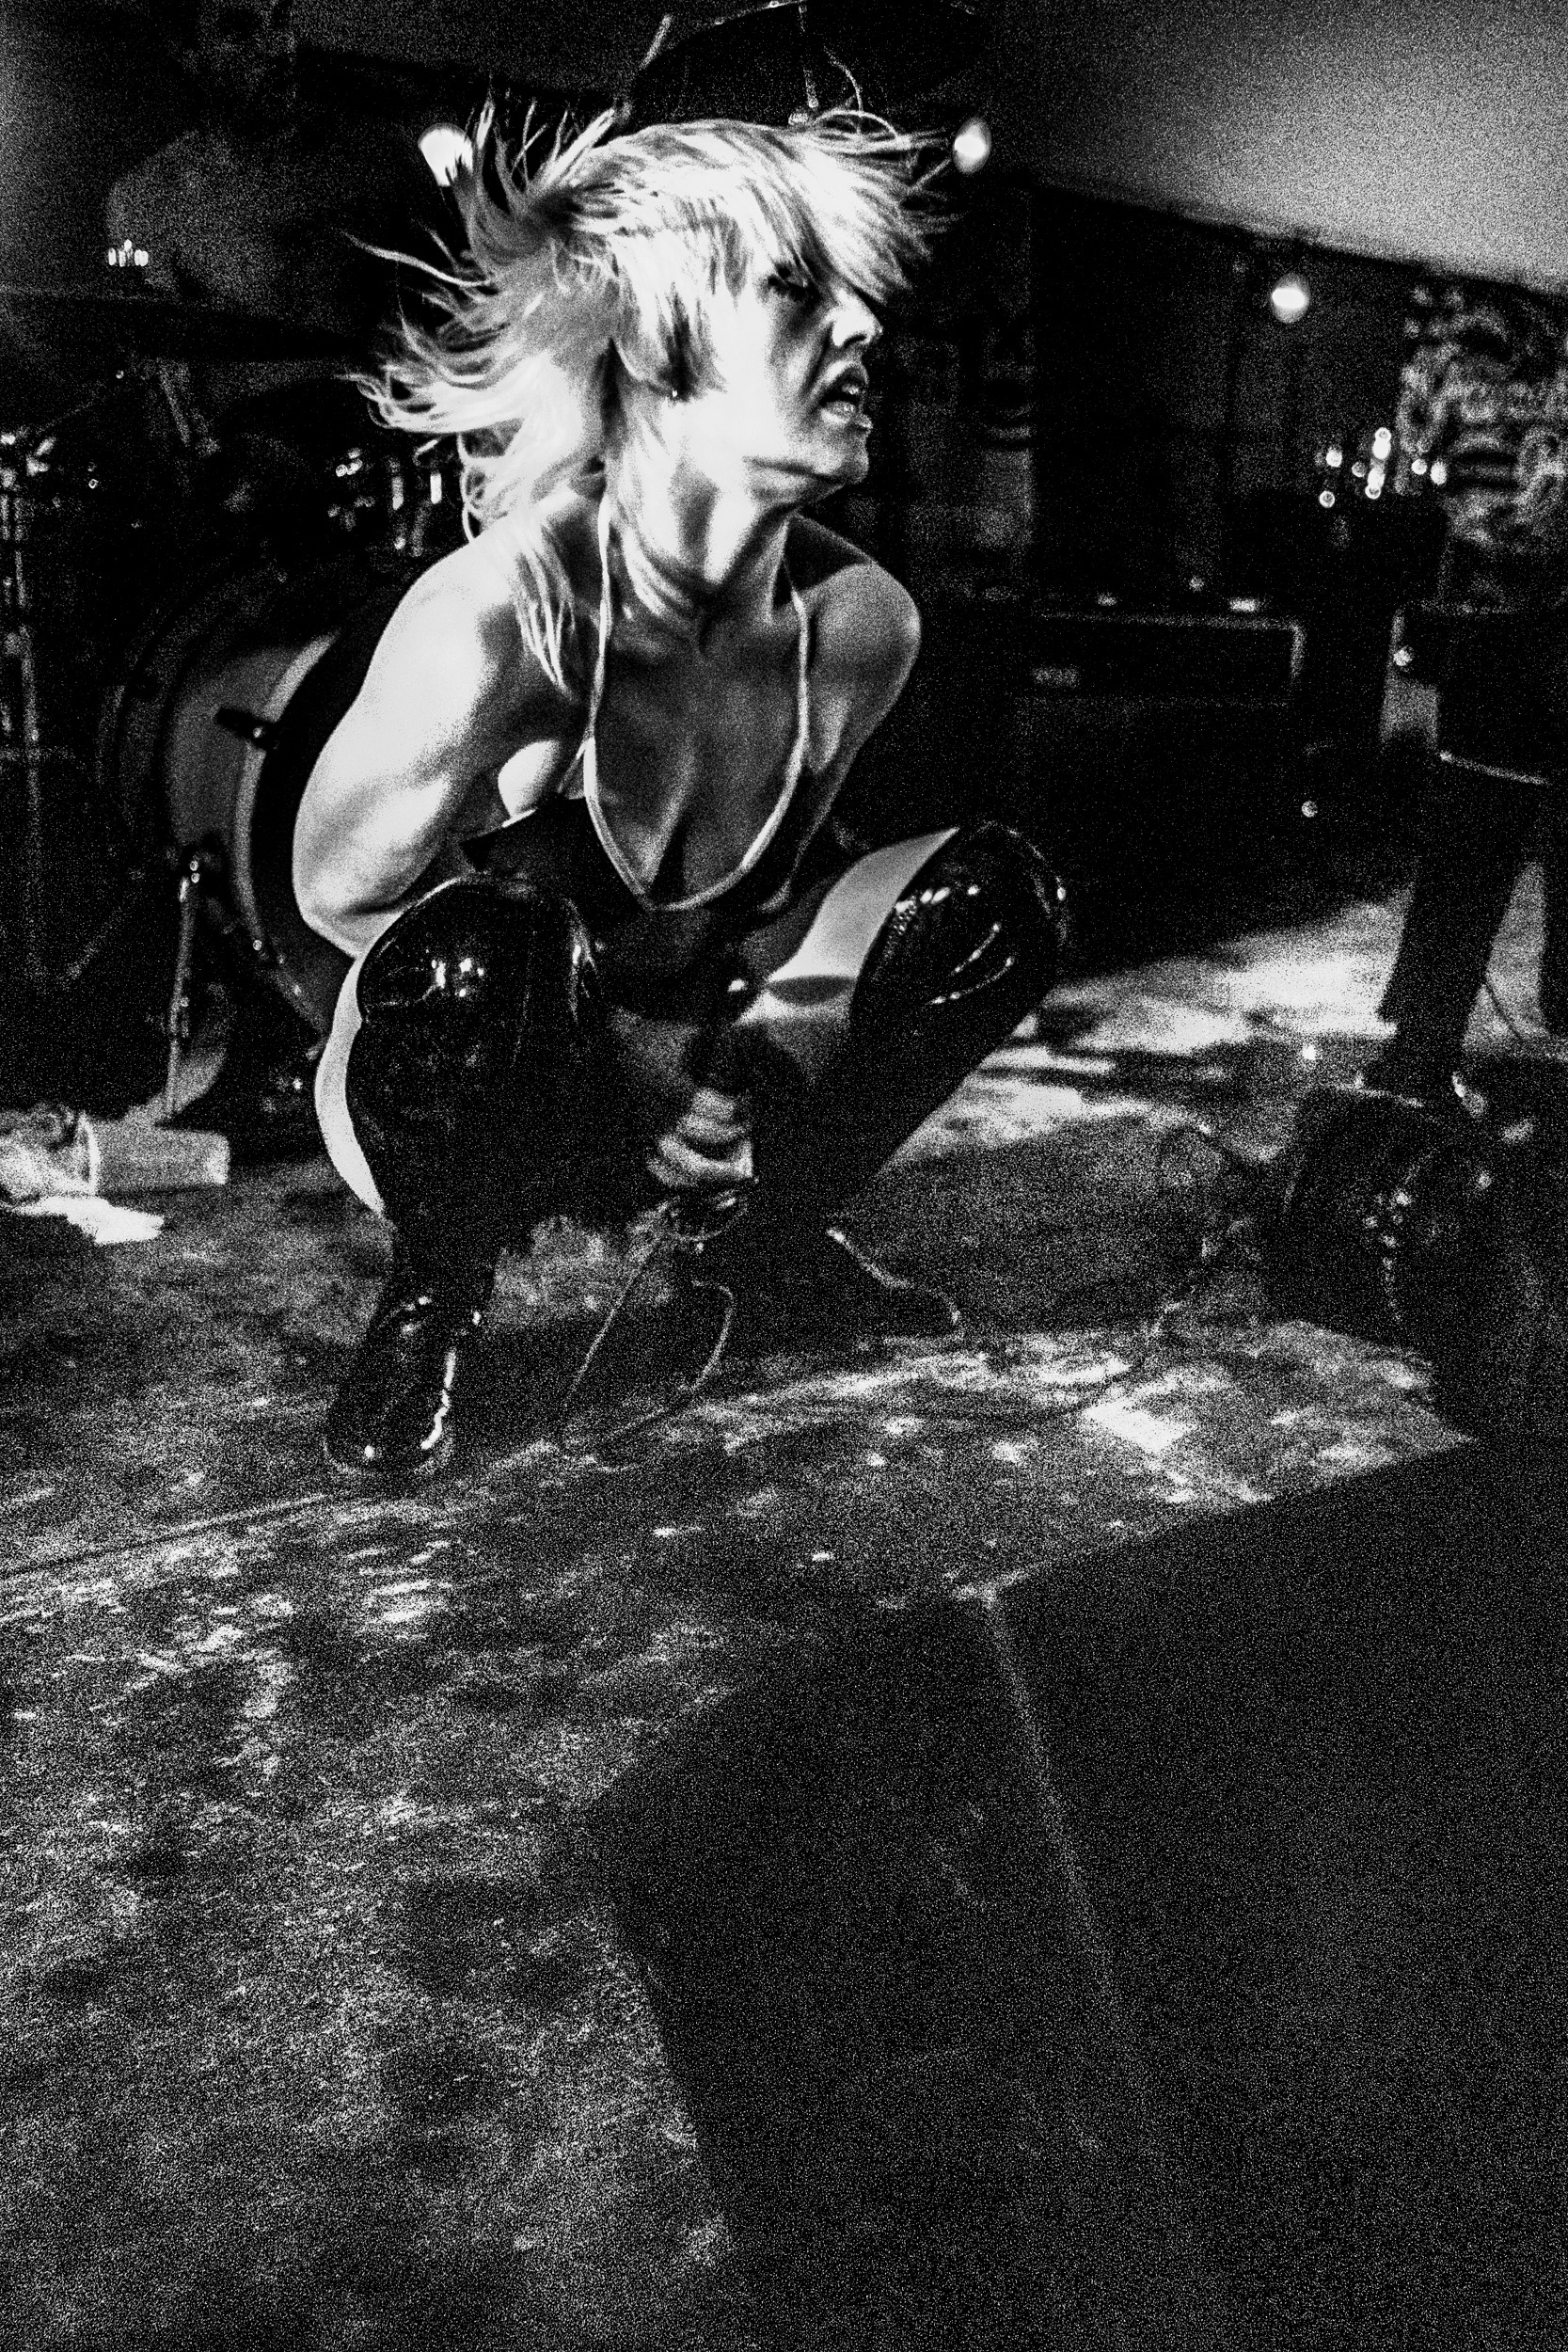 afcortes_amyl_the_sniffers-9997.jpg